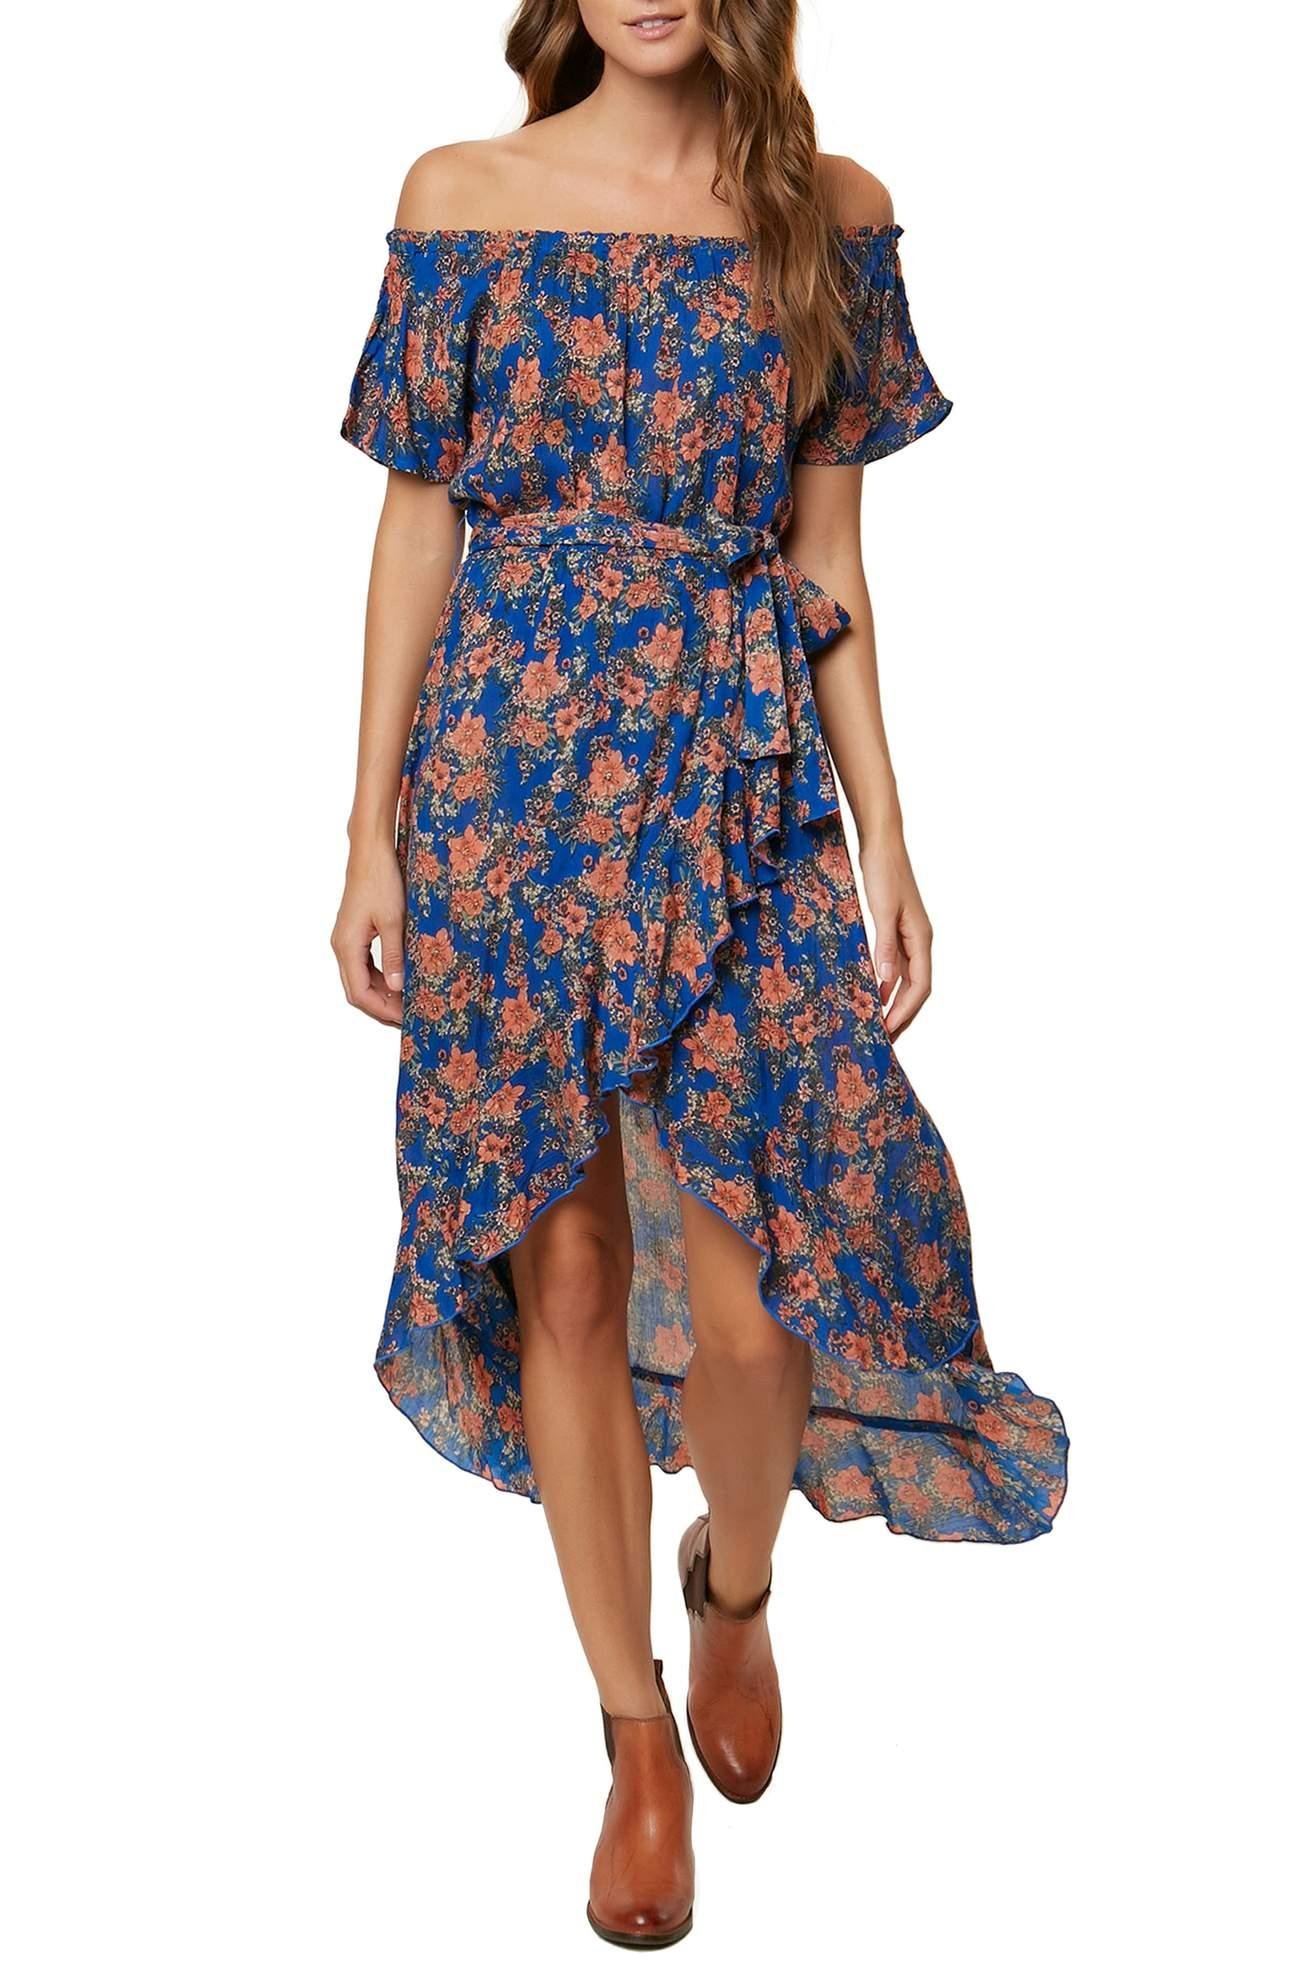 <p>Constance Woven Wrap Maxi Dress/O'NEILL.{&nbsp;}Bring back the boho beat when you wrap yourself in this frilly, floral, front-slit dress from Constance Woven Wrap Maxi Dress/O'NEILL.$64.00 at Nordstrom. (Image: Nordstrom)</p><p><br></p><p></p>